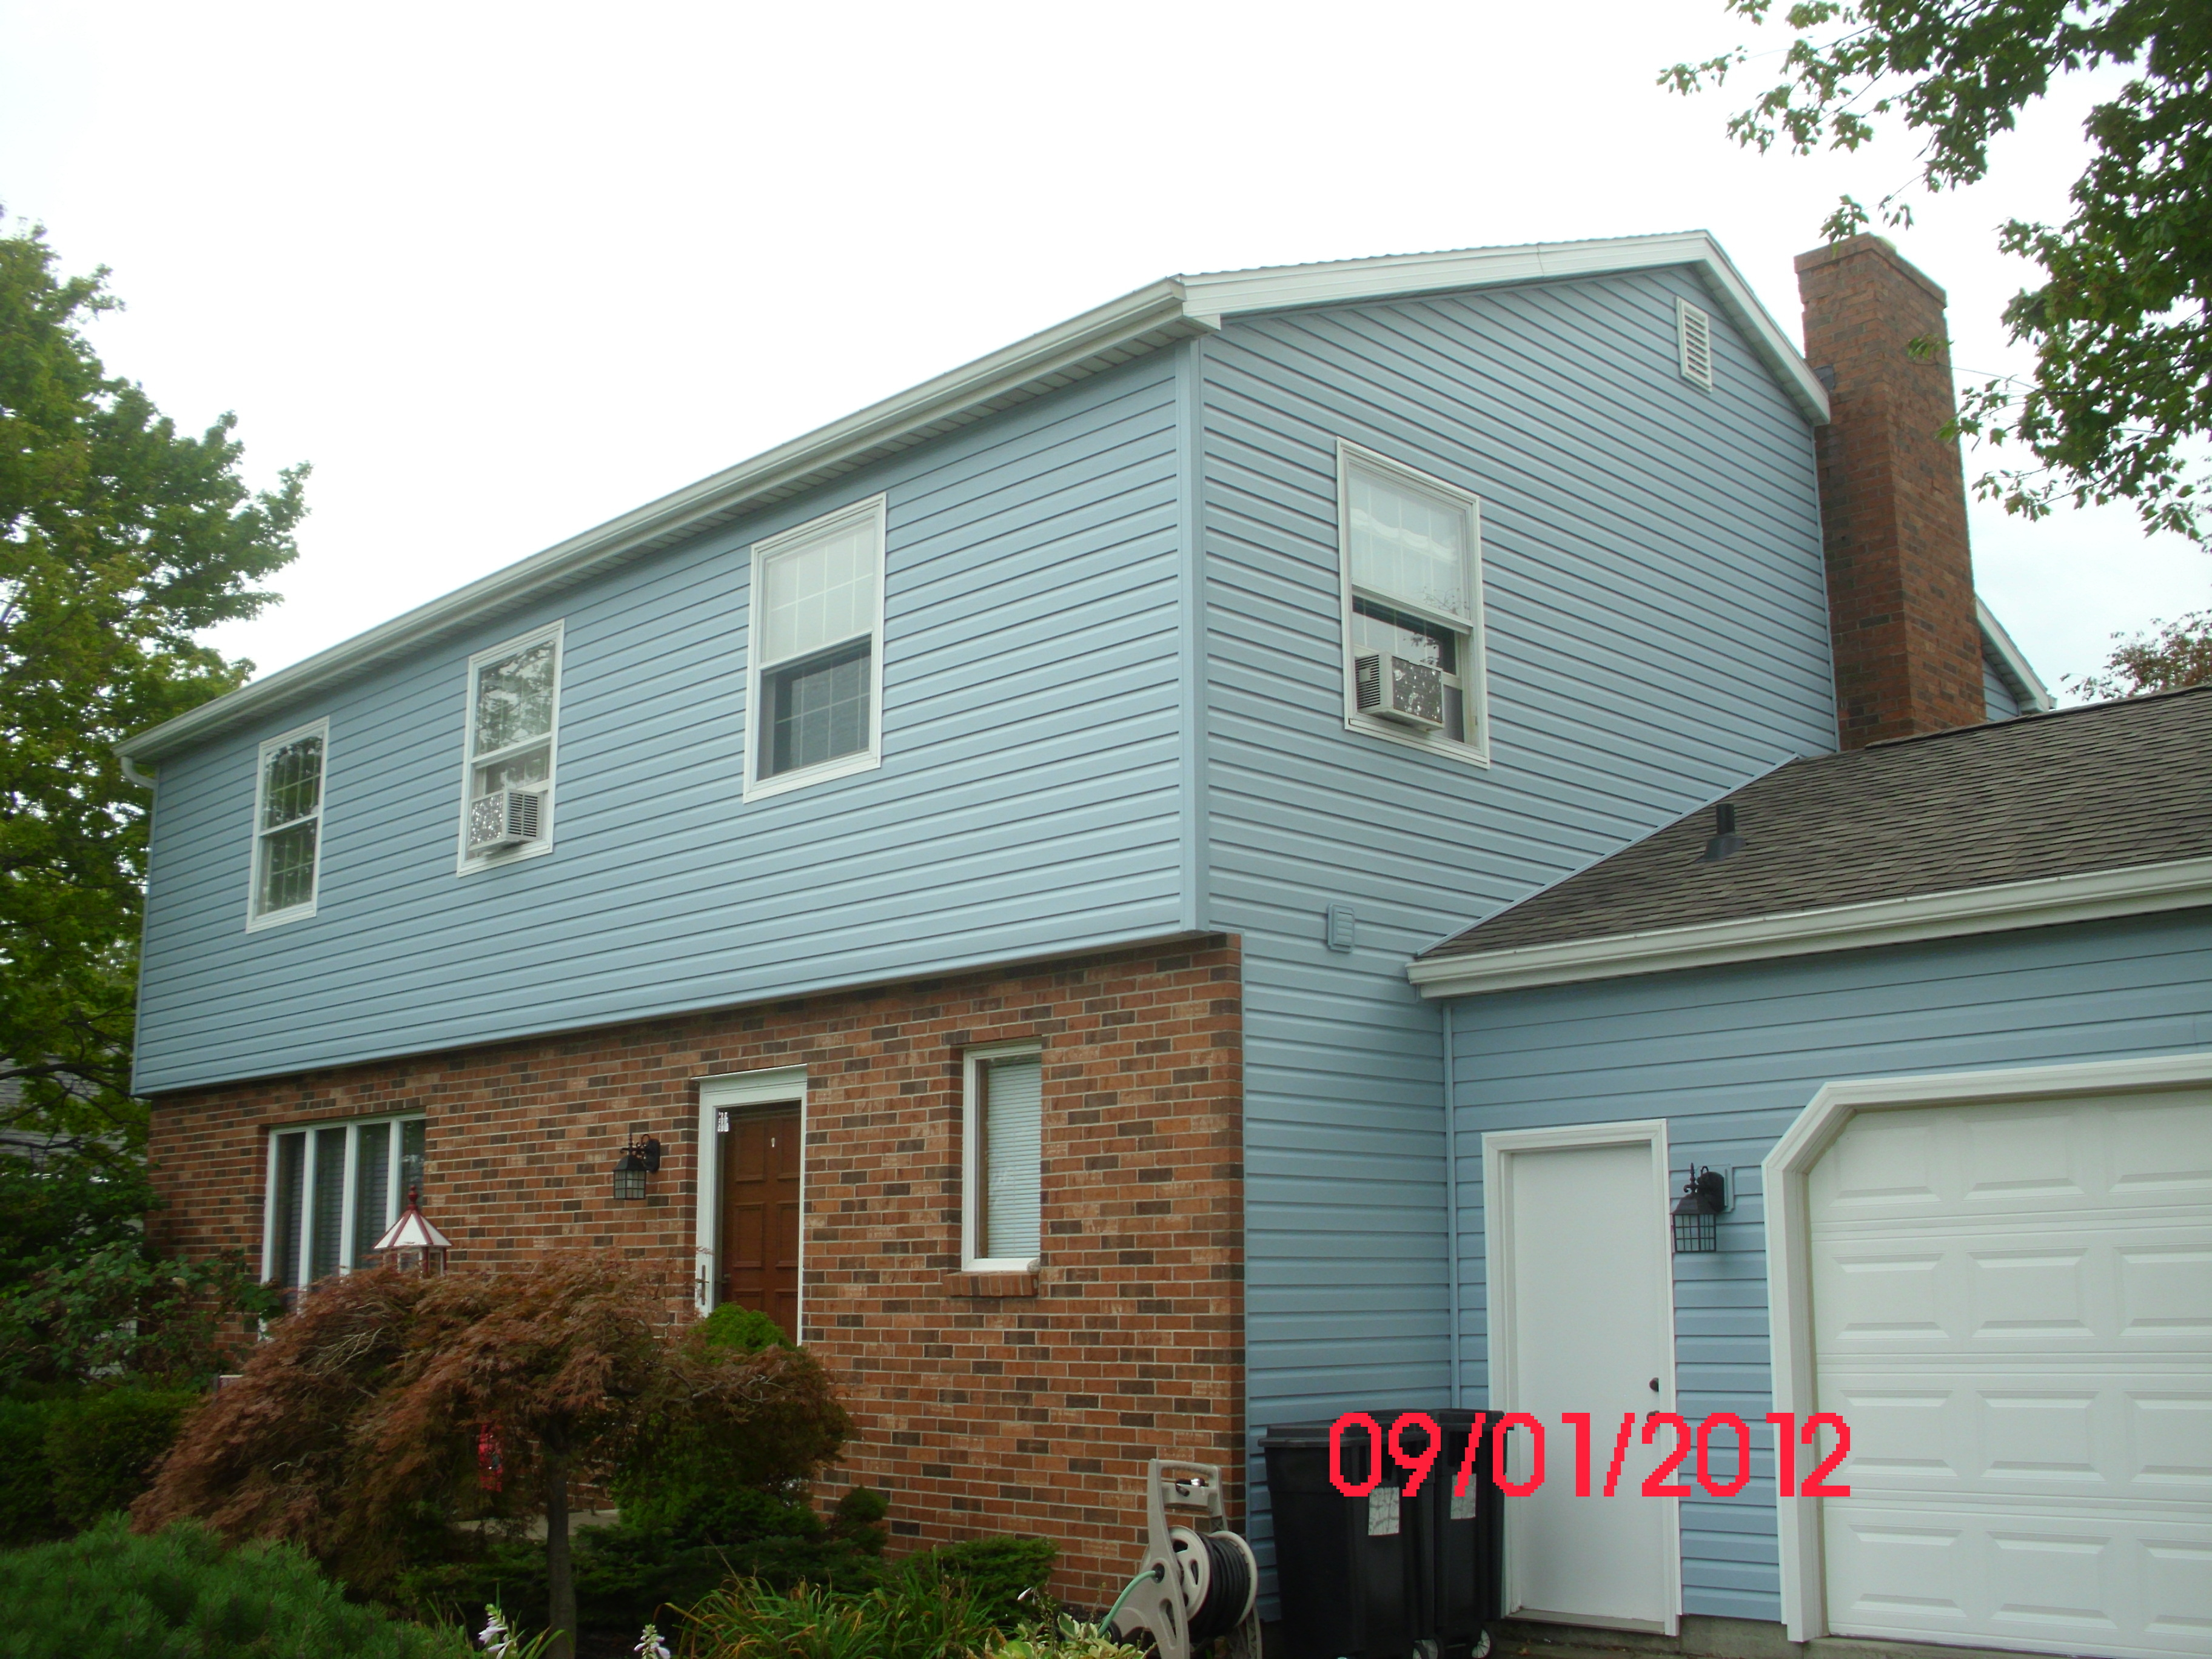 Residential Renovations image 6